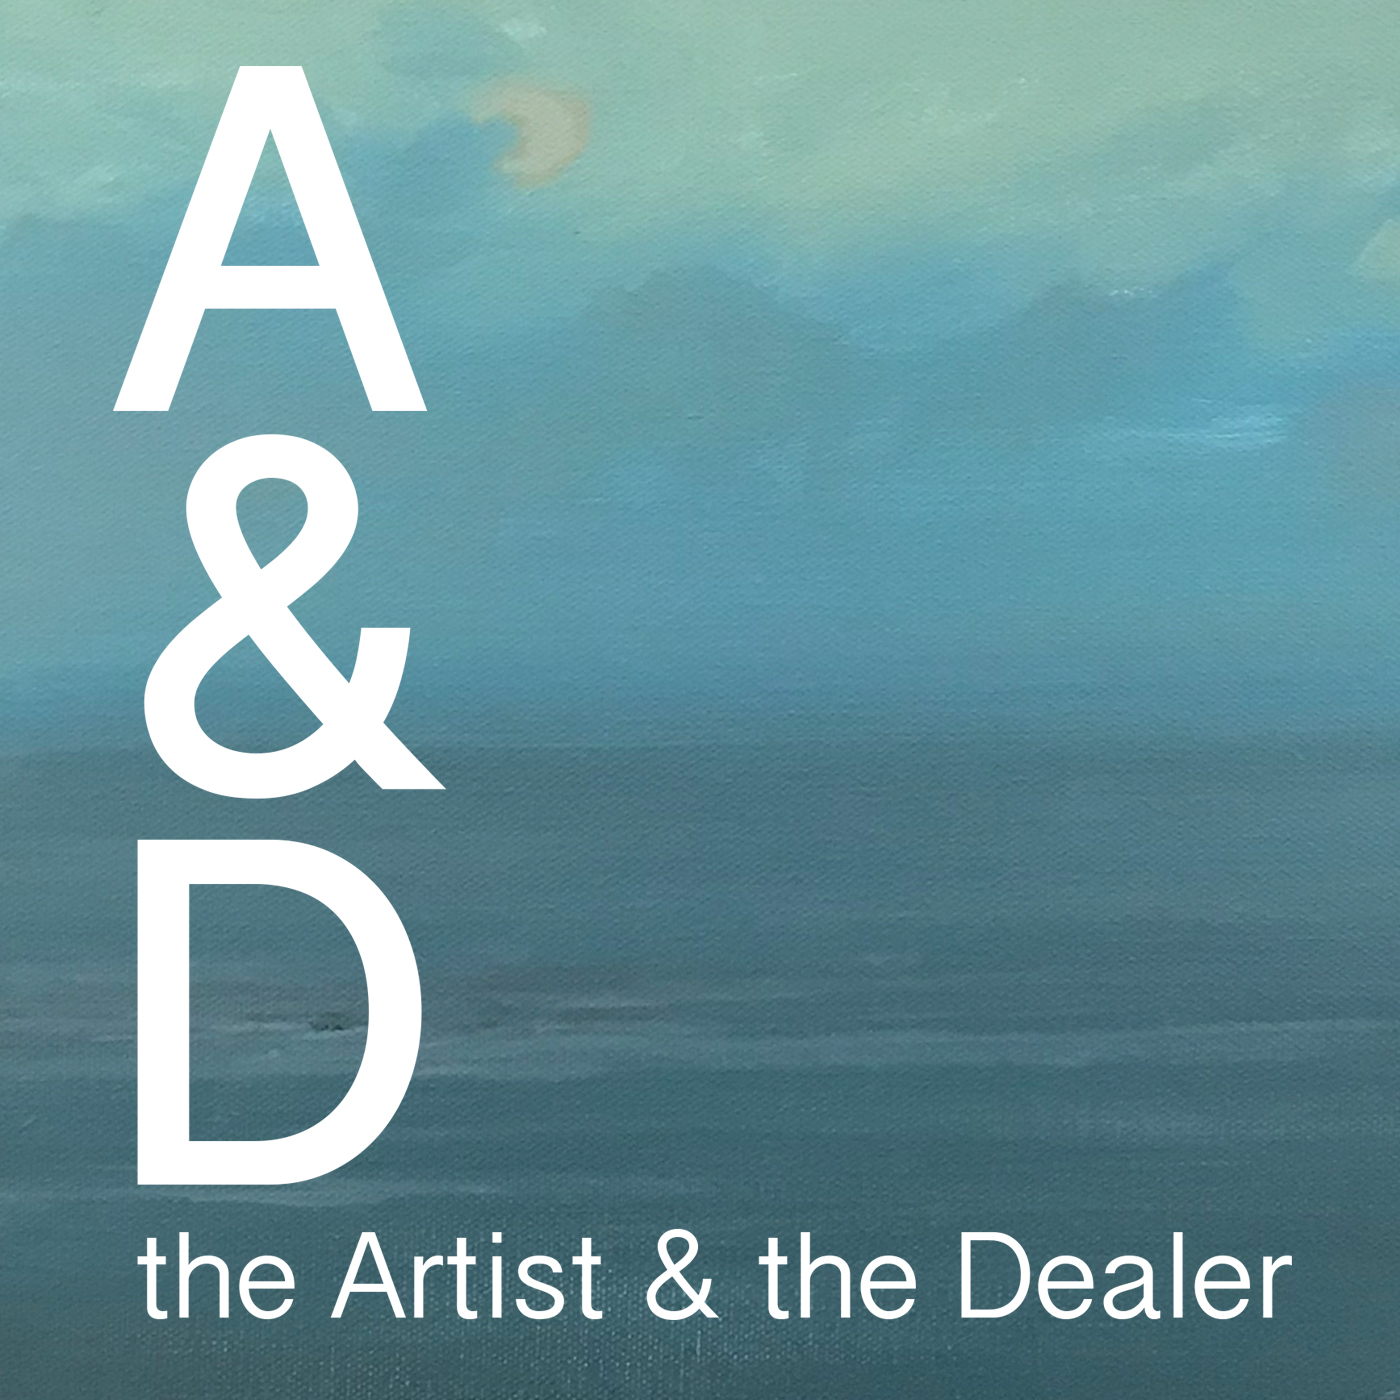 theArtist&theDealer.jpg